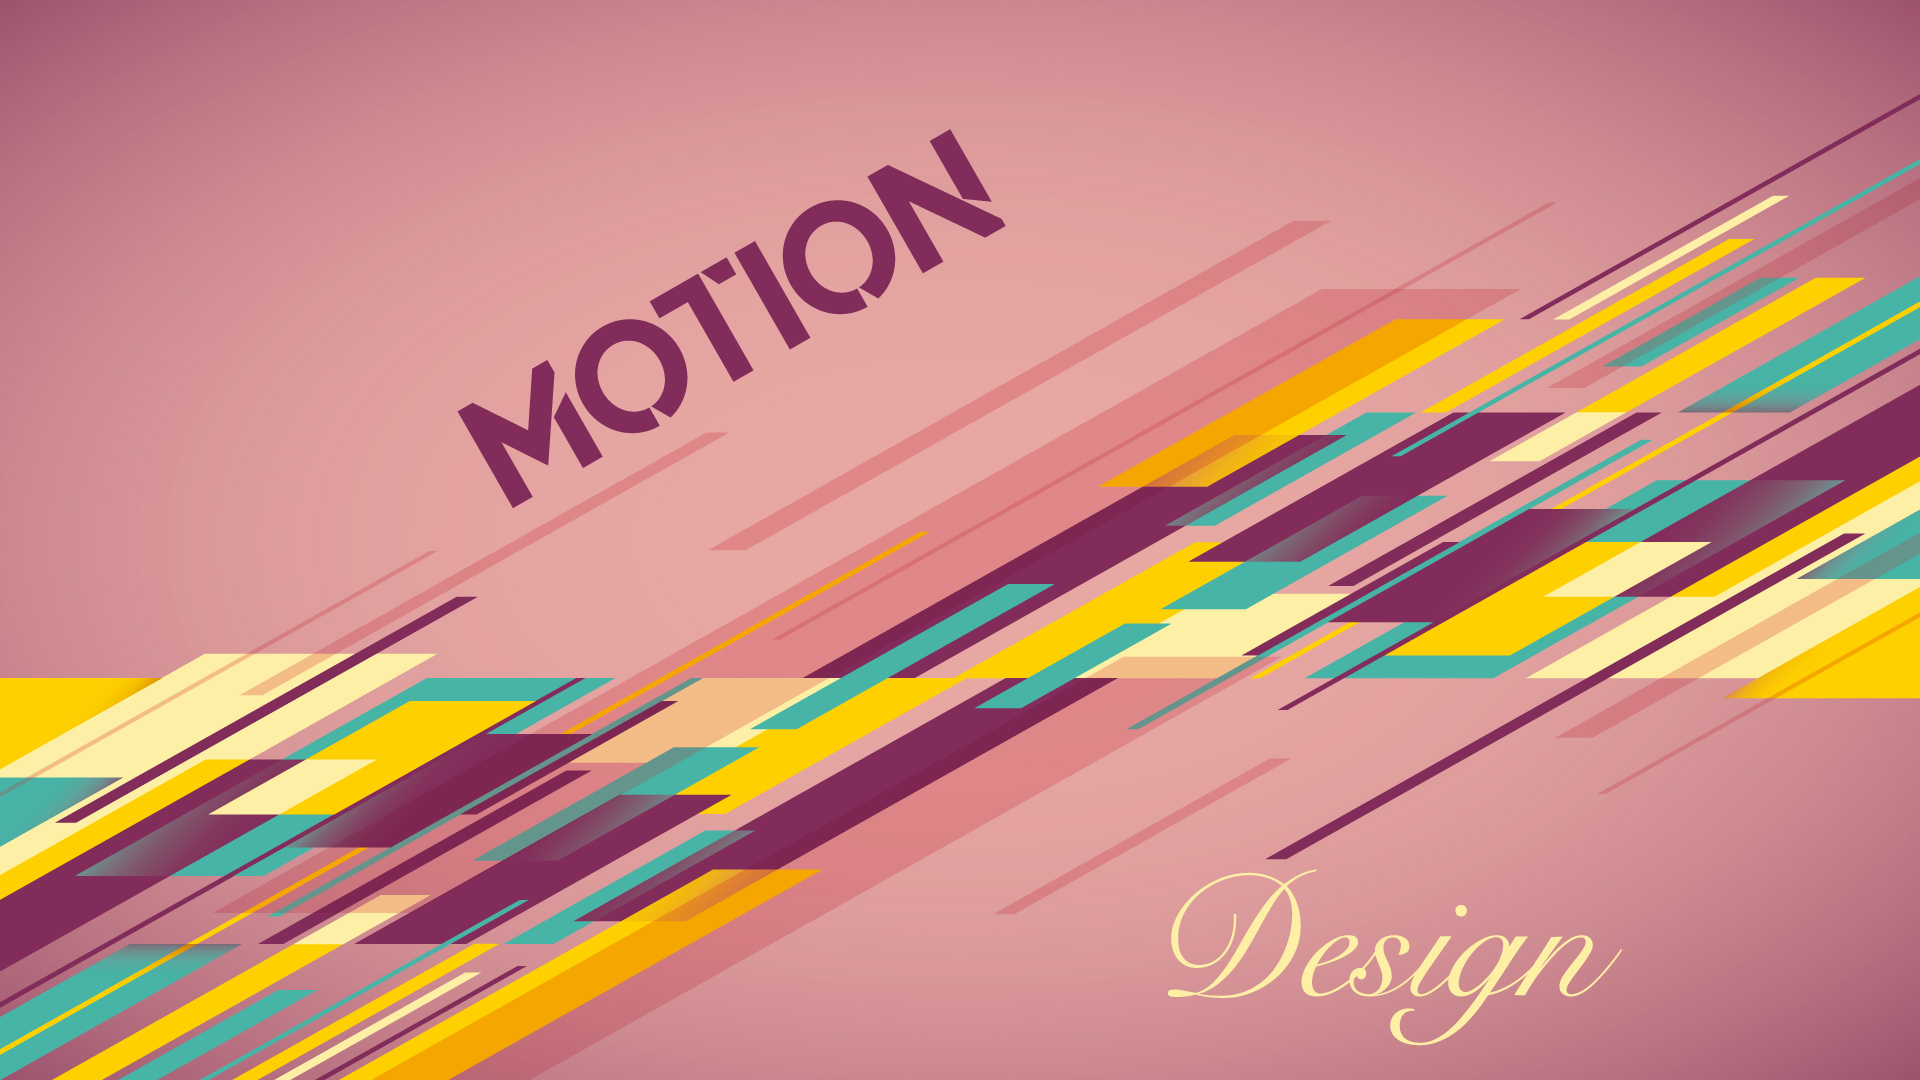 Motiondesign couverture